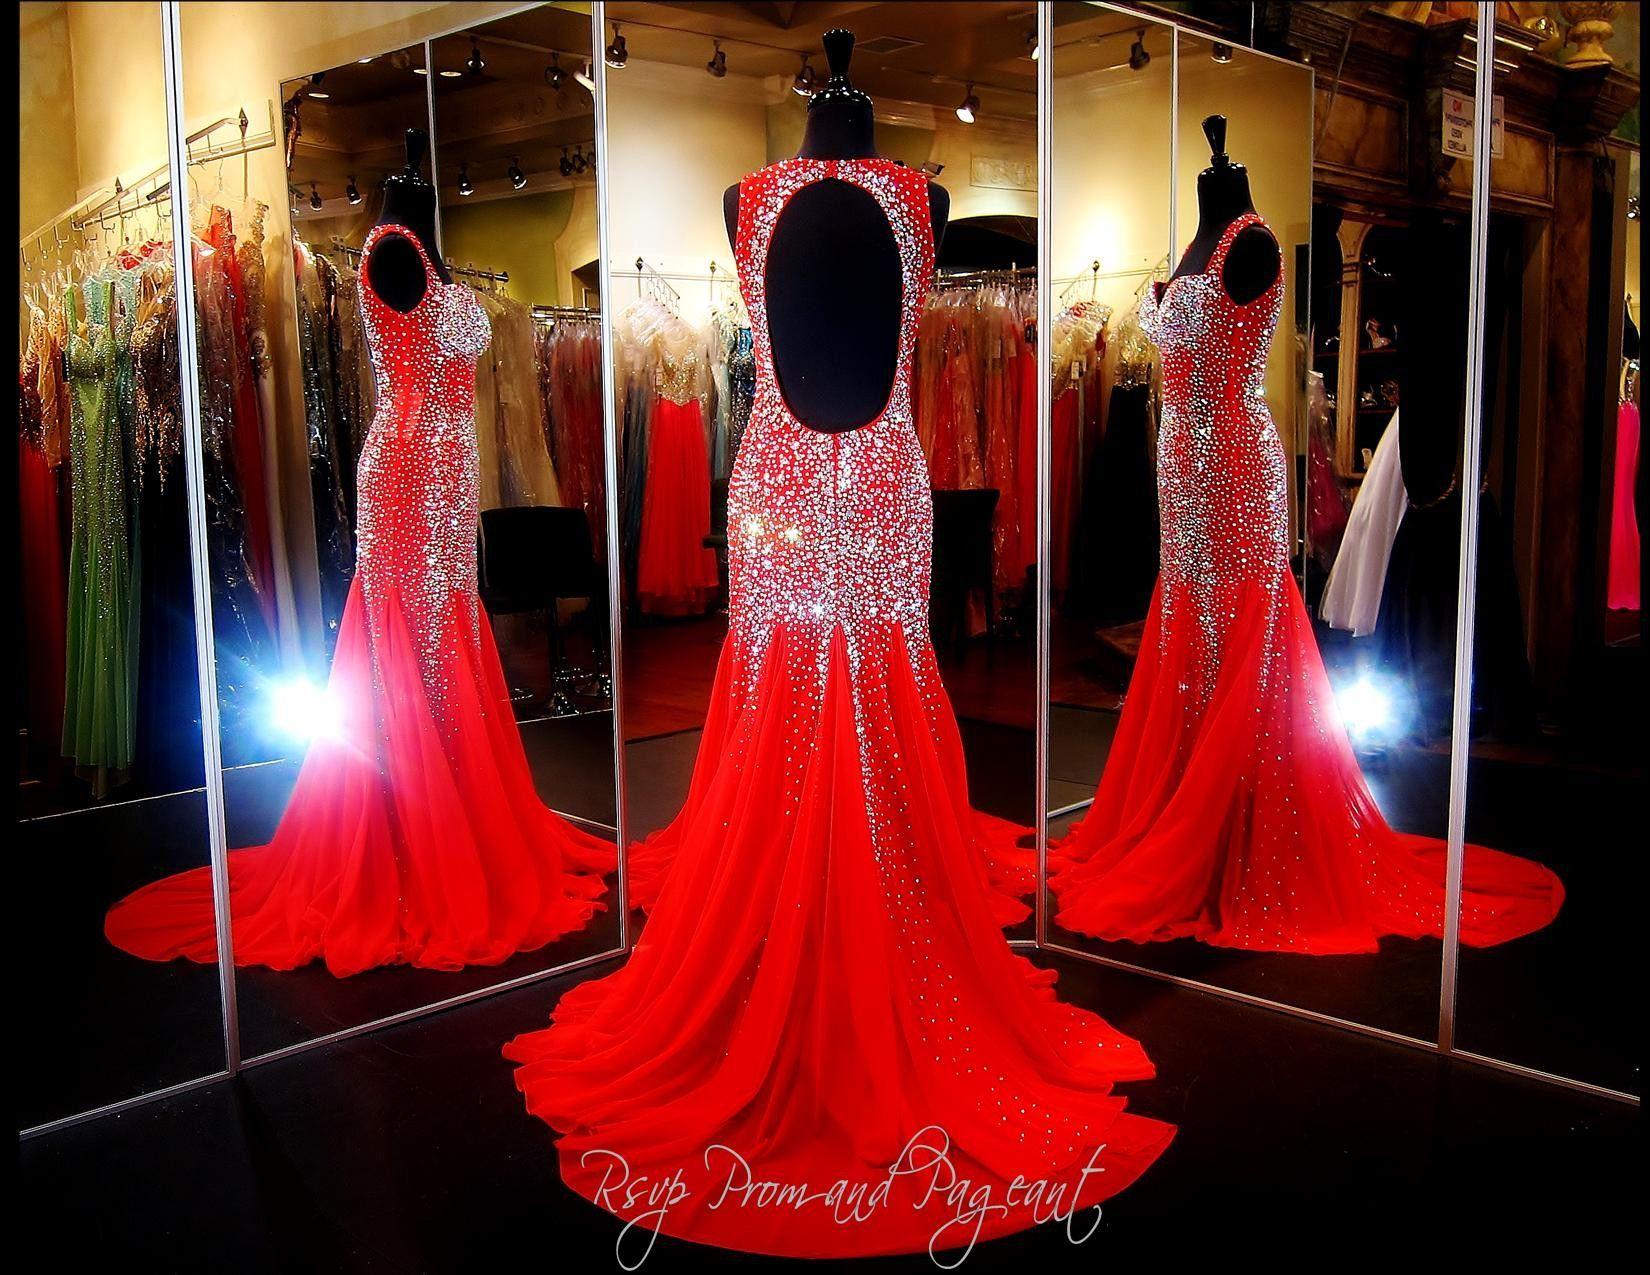 Red Beaded Mermaid-Sweetheart Neckline-Open Back-Halter-Train-115JC0532700518 at Rsvp Prom and Pageant, Atlanta, GA